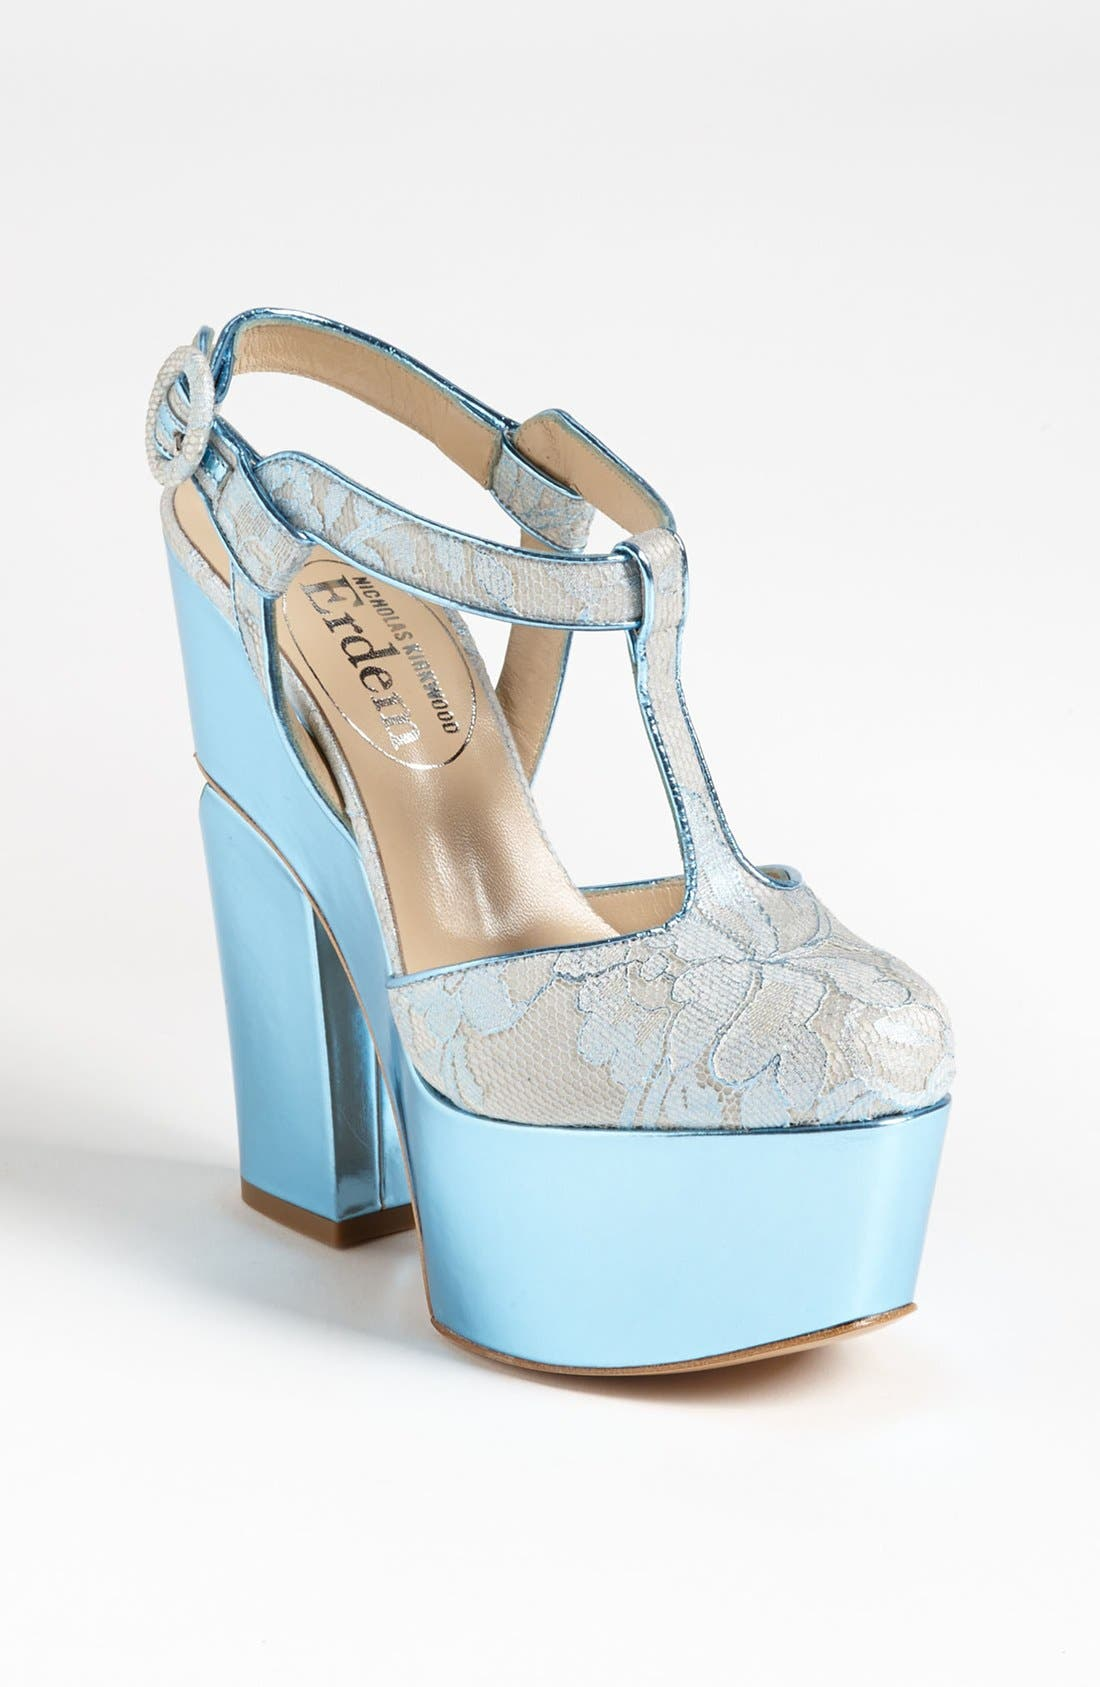 Alternate Image 1 Selected - Nicholas Kirkwood for Erdem Platform Pump